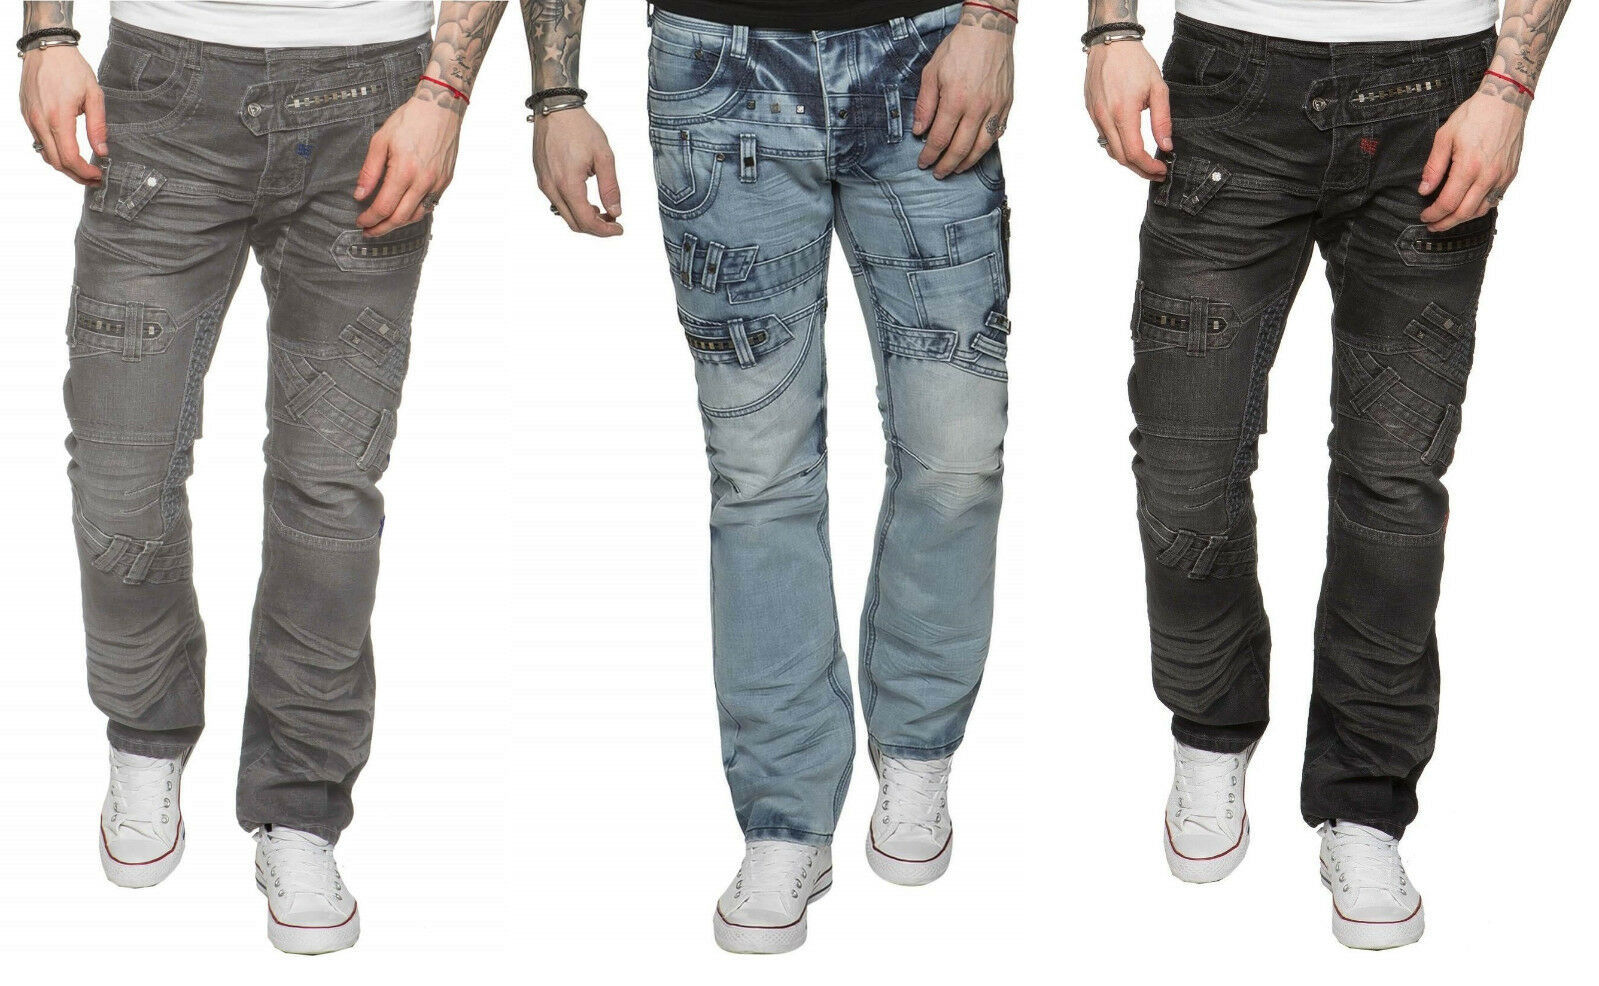 New ETO Jeans For Men Funky Style Biker Denim Pants in All Waist Größes 28 - 42  | Helle Farben